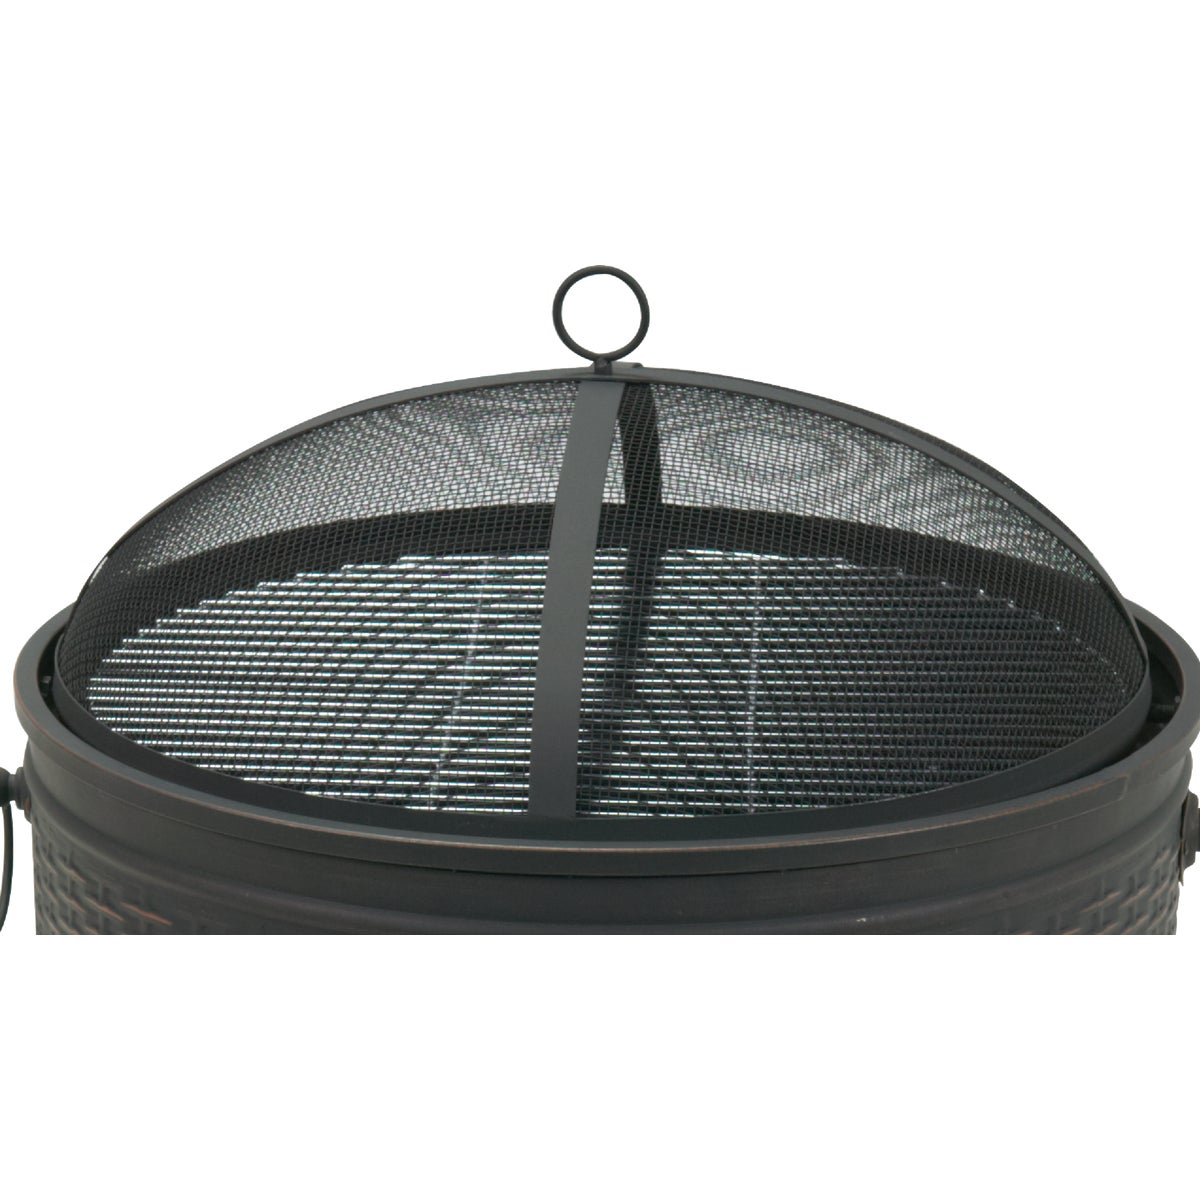 22.4X6.7 FIRE PIT COVER - FT157-C by Do it Best